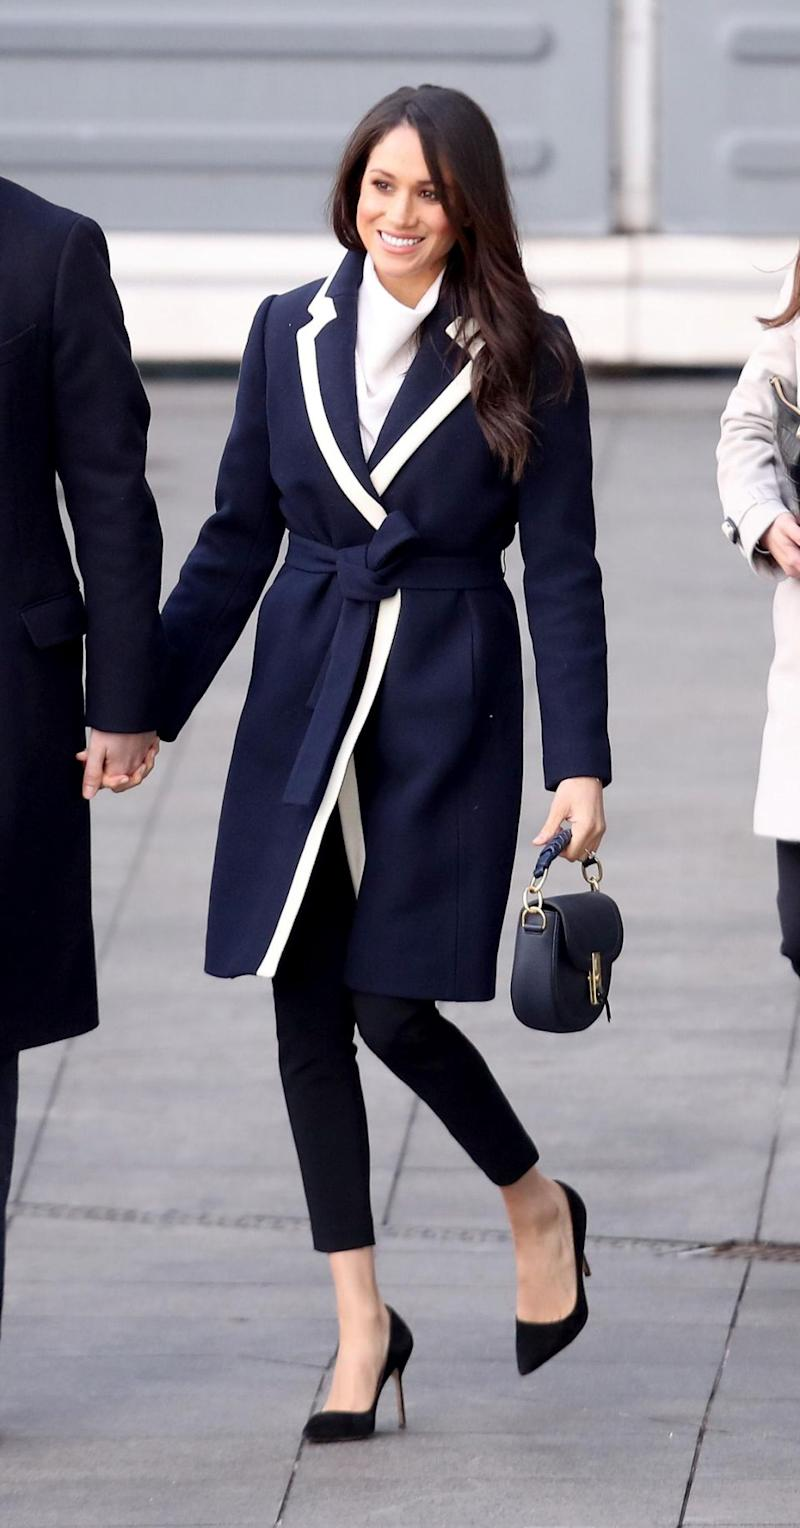 Meghan Markle is said to be considering who will walk her down the aisle. Photo: Getty Images